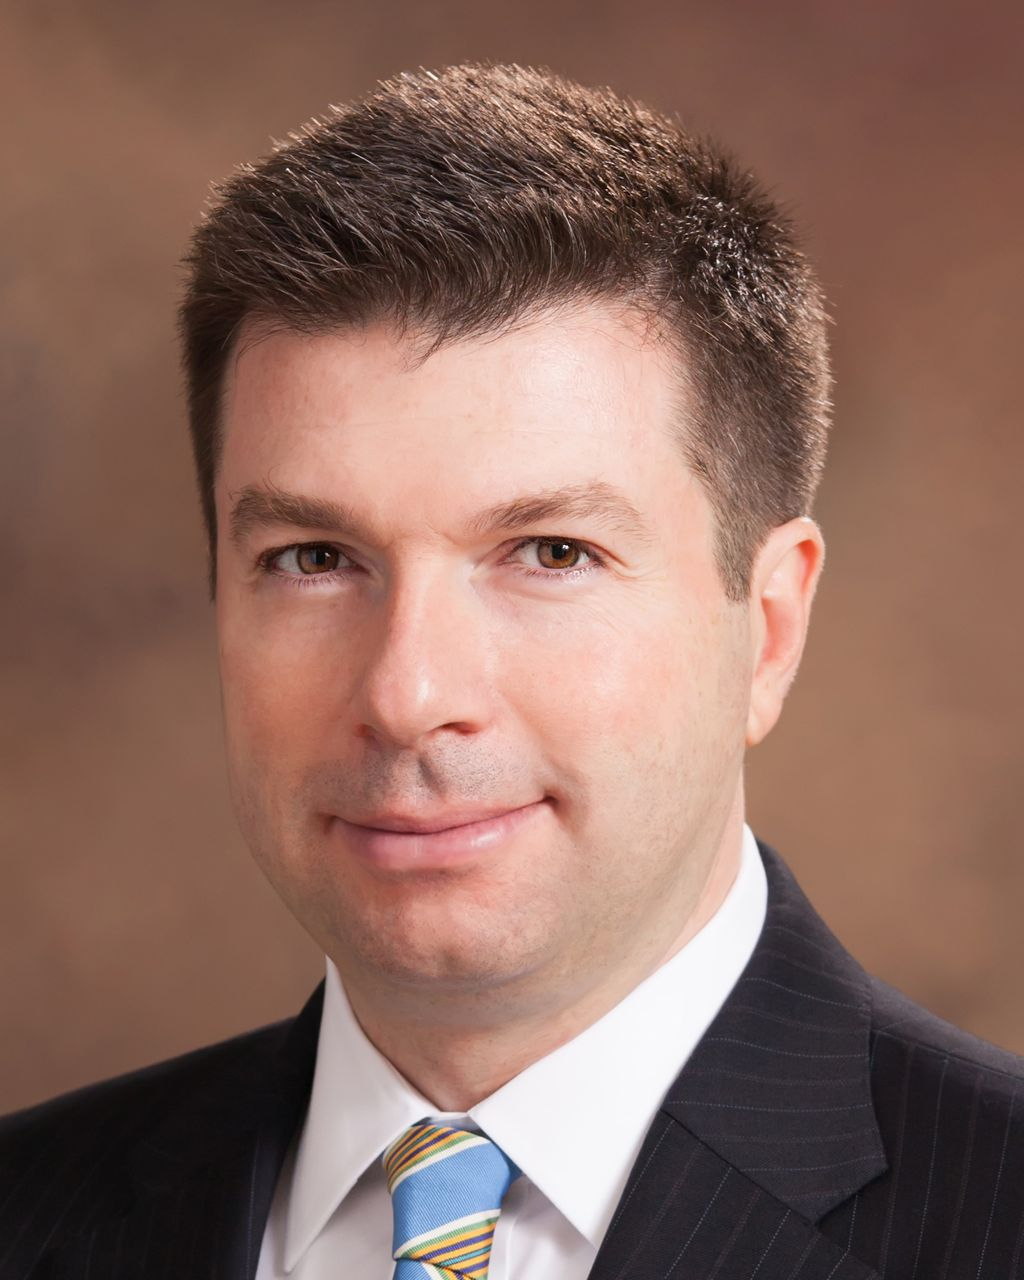 Patrick Cote, financial advisor Dedham MA